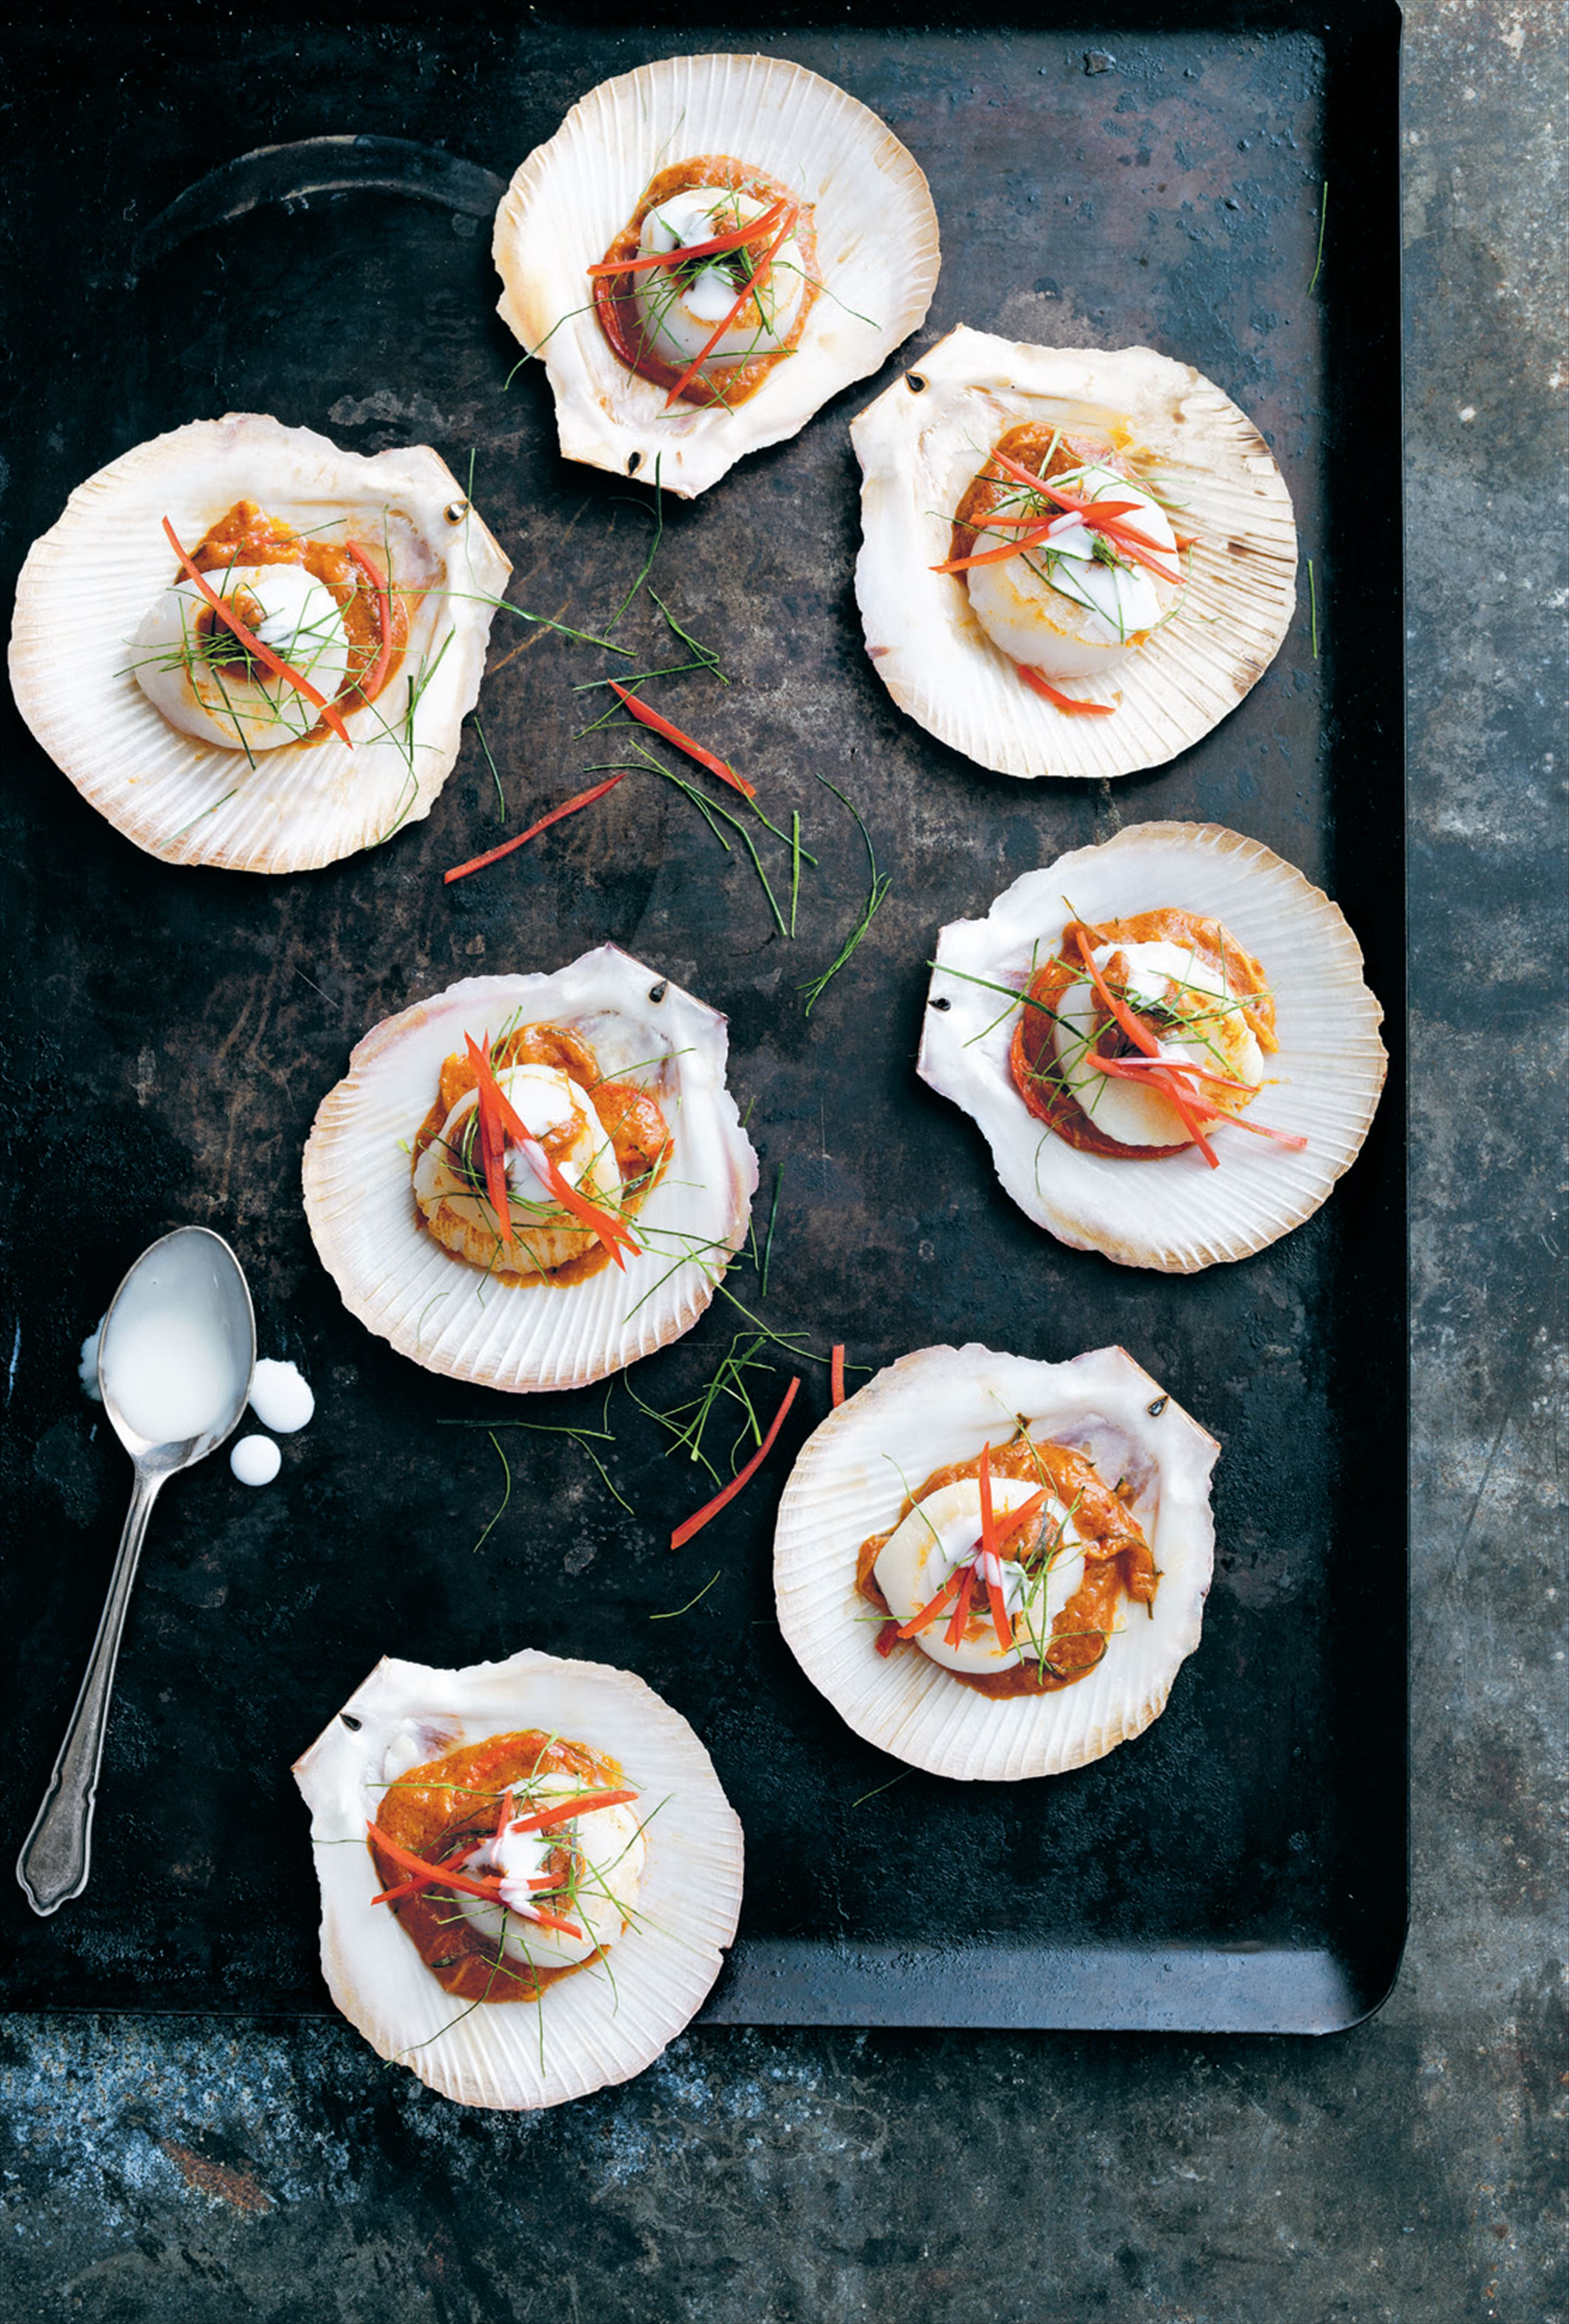 Scallops with rich red curry